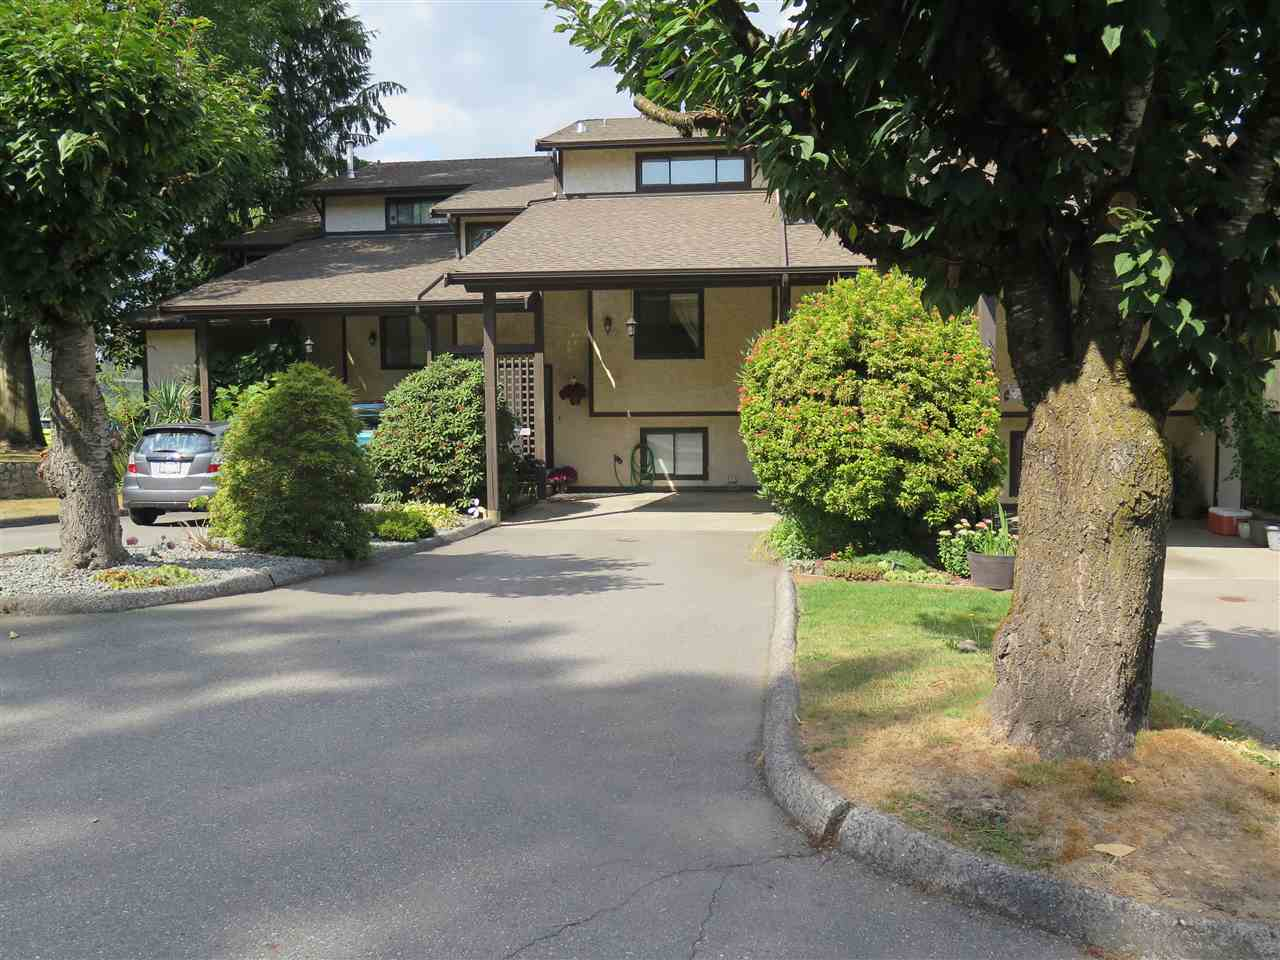 Main Photo: 15 33361 WREN Crescent in Abbotsford: Central Abbotsford Townhouse for sale : MLS®# R2301814